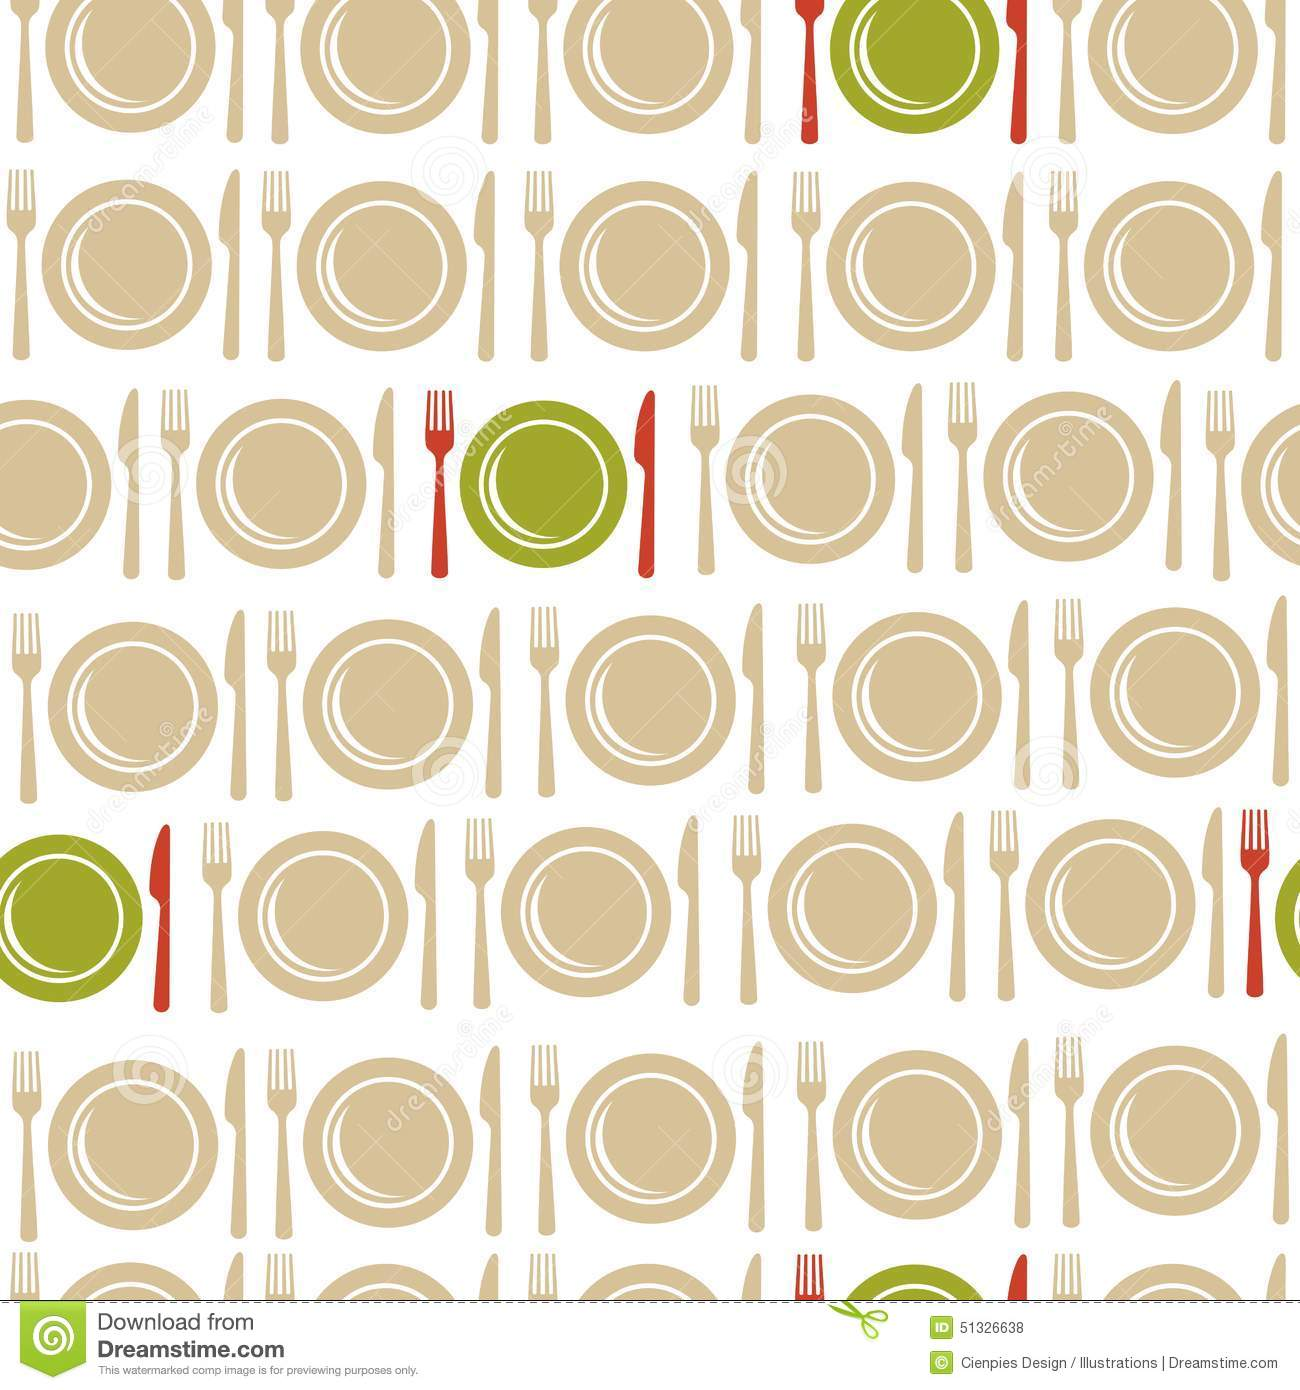 Book Inside Cover Patterned Paper ~ Restaurant seamless pattern background stock vector